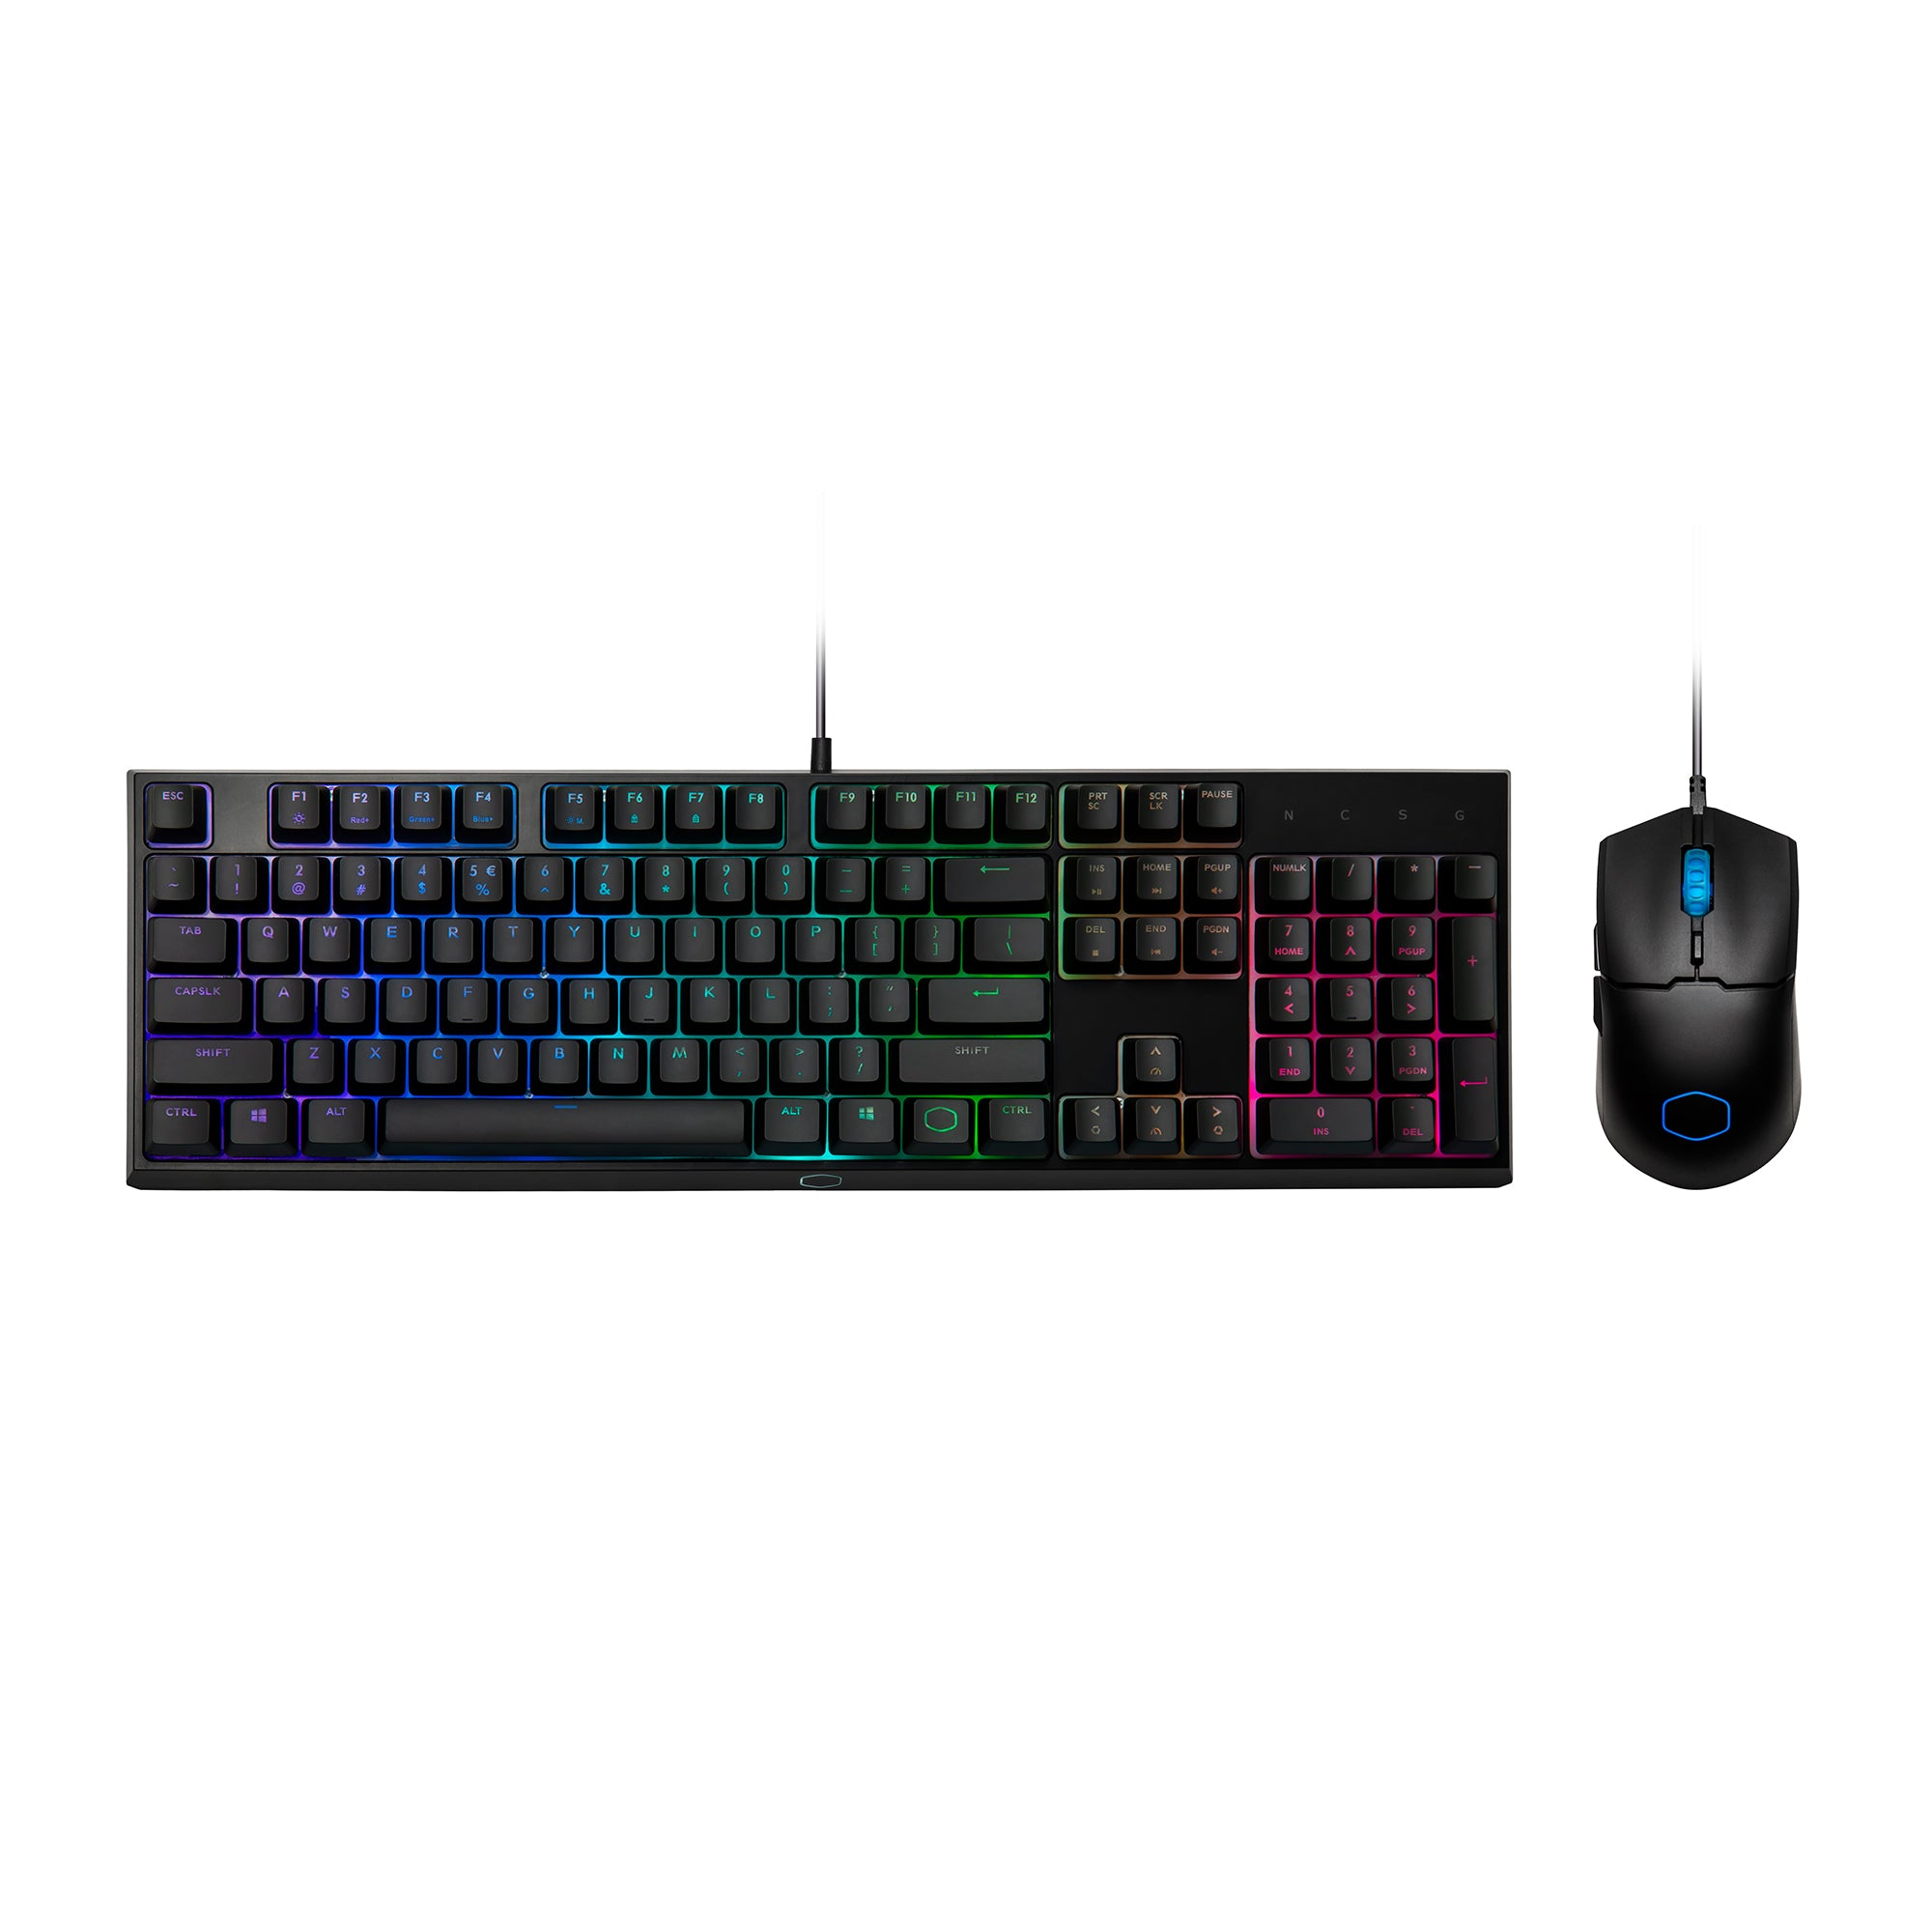 Cooler Master MS110 Komplektas - Spacebar.gg